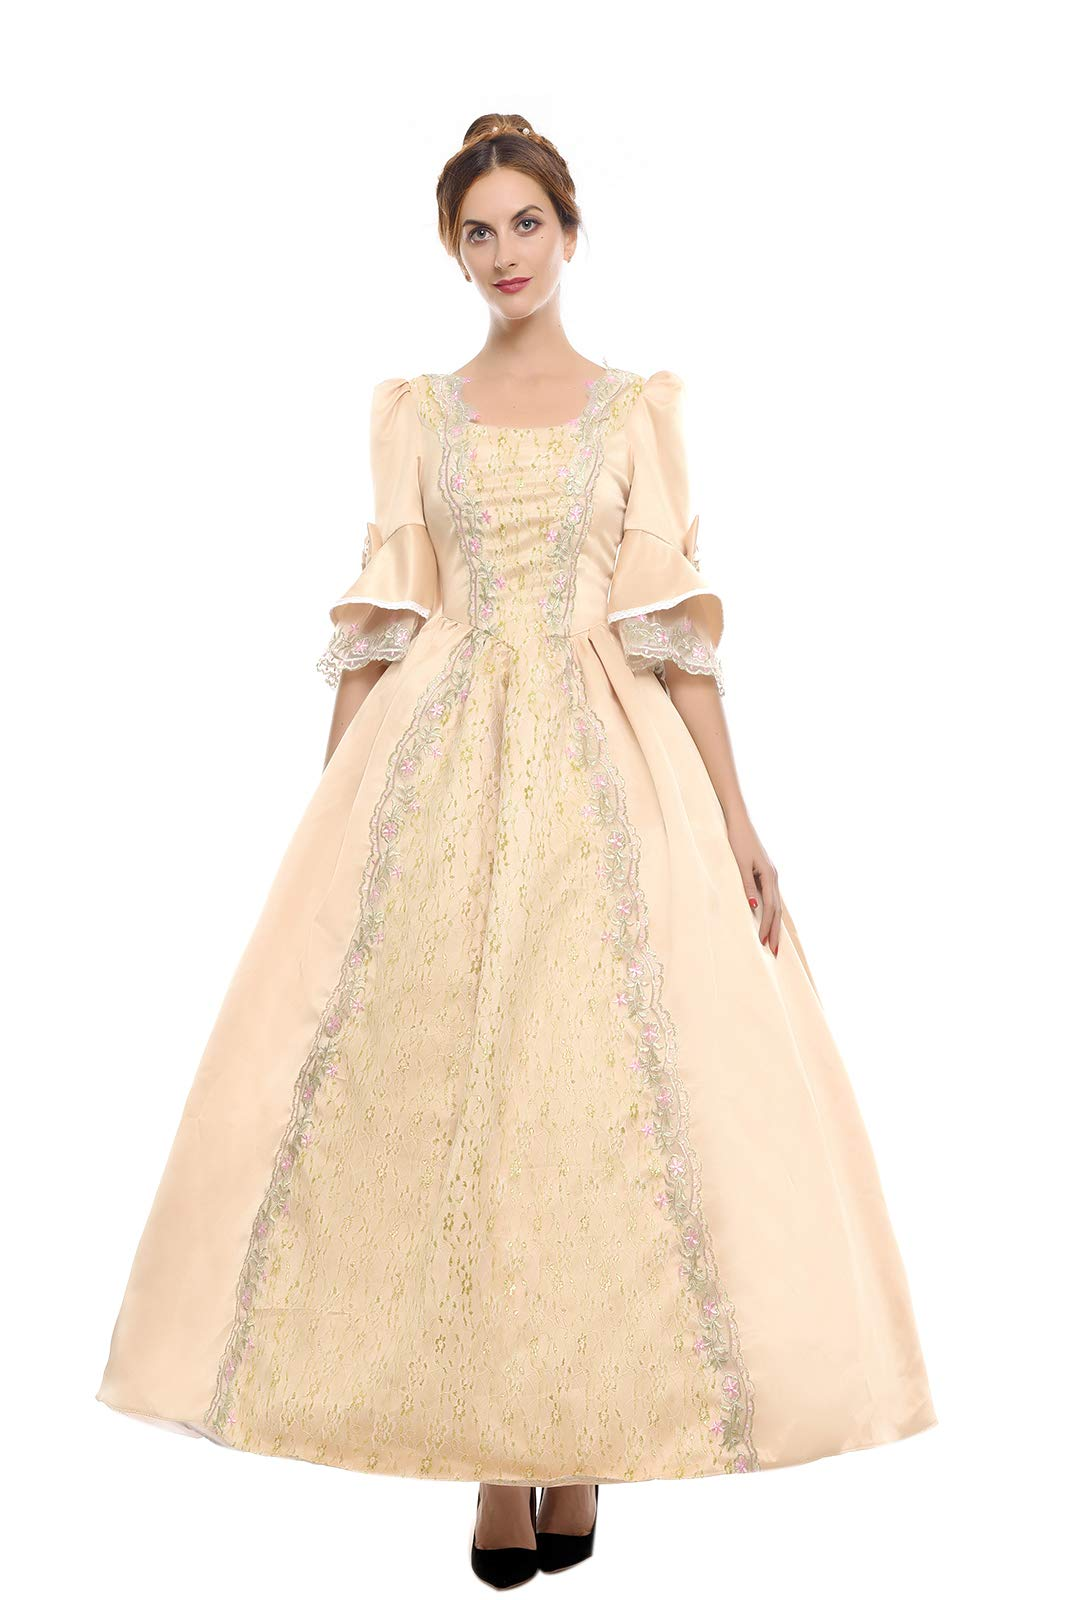 3990aaf5c3aad Galleon - ROLECOS Womens Royal Vintage Medieval Dresses Lady Satin Gothic Masquerade  Dress Golden